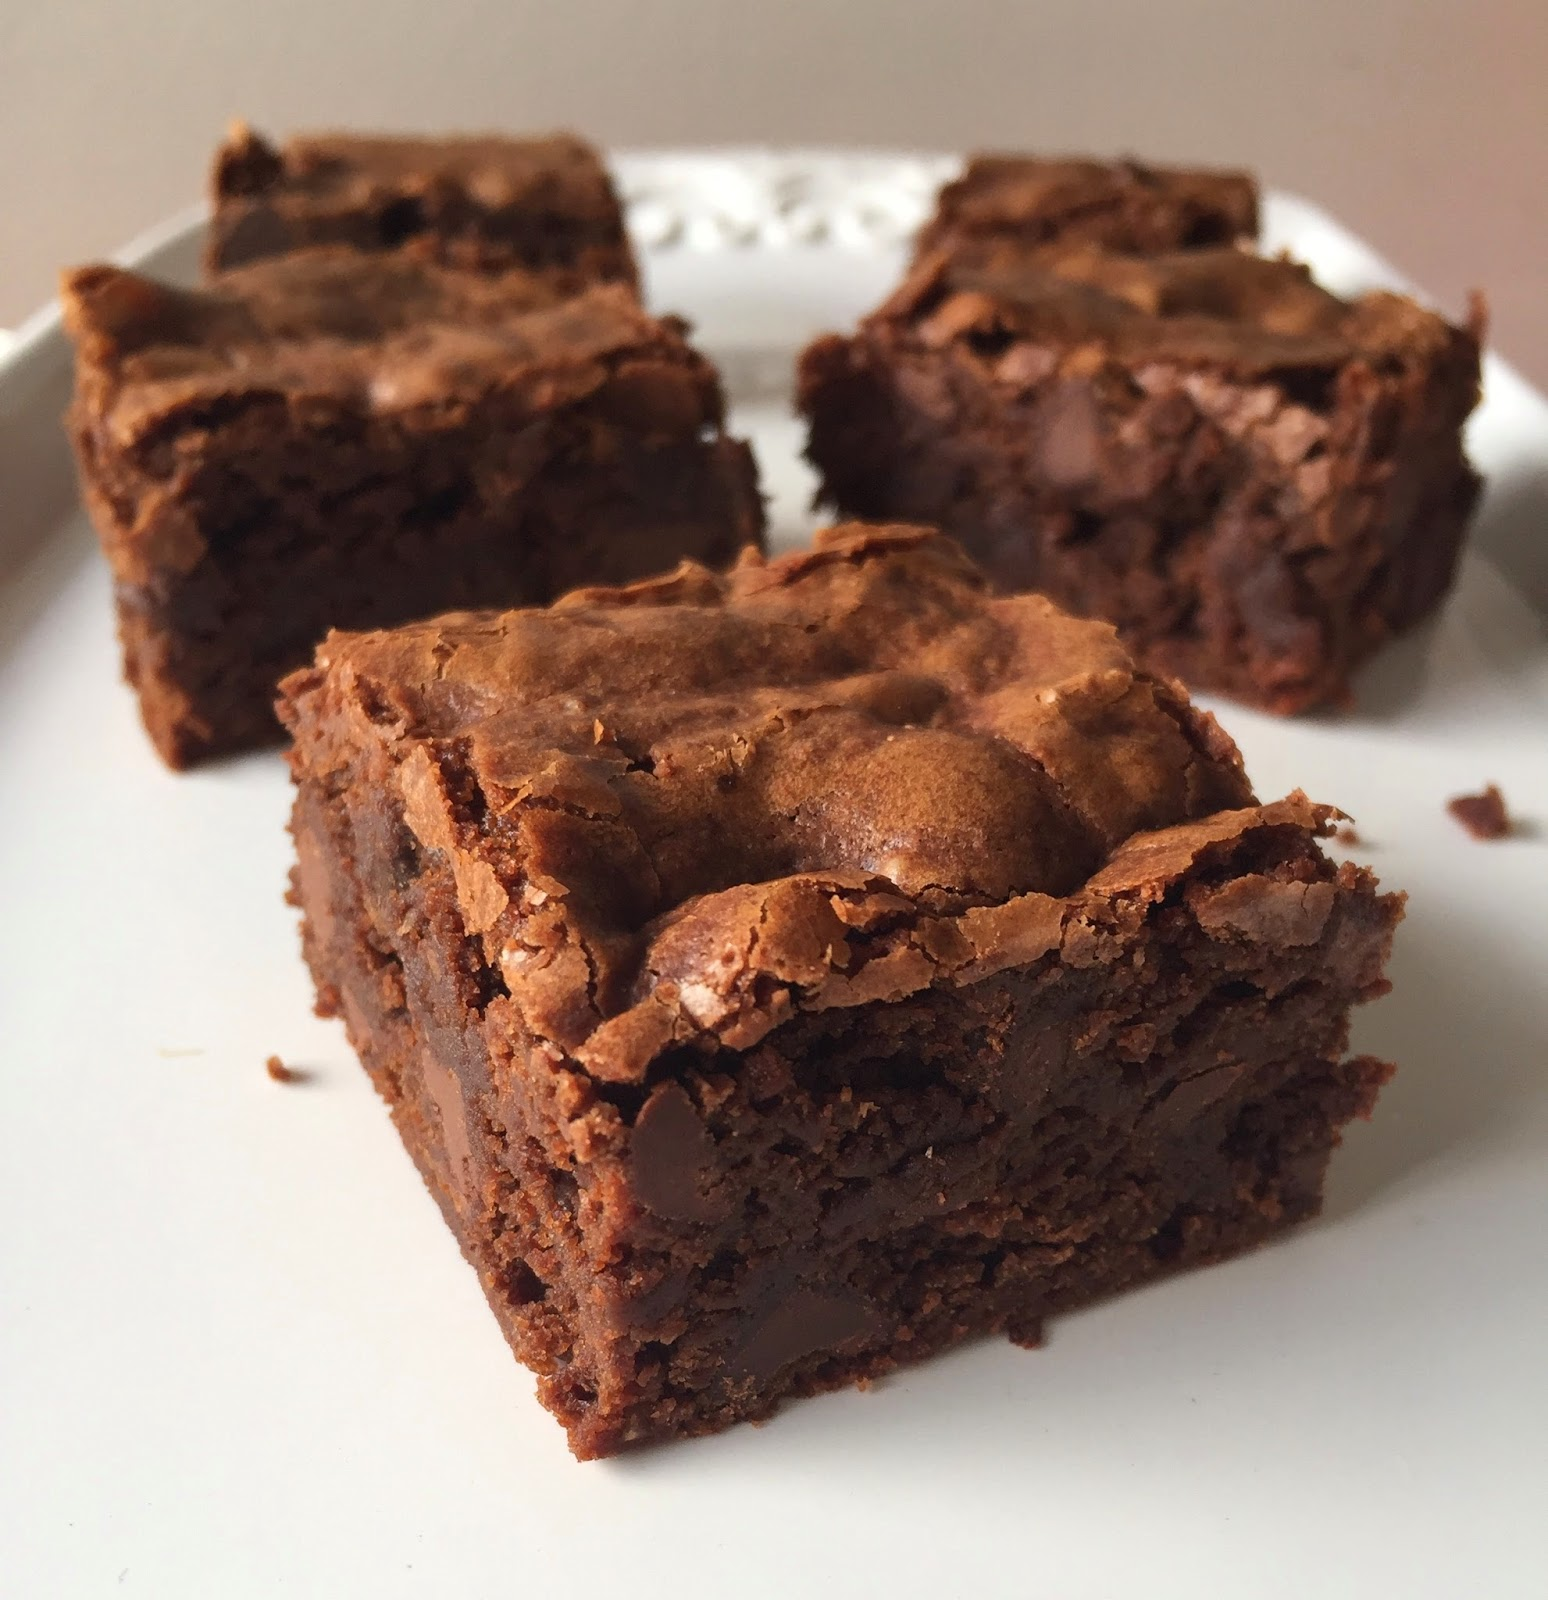 Goddess of Baking: The Perfect Fudgy Brownie